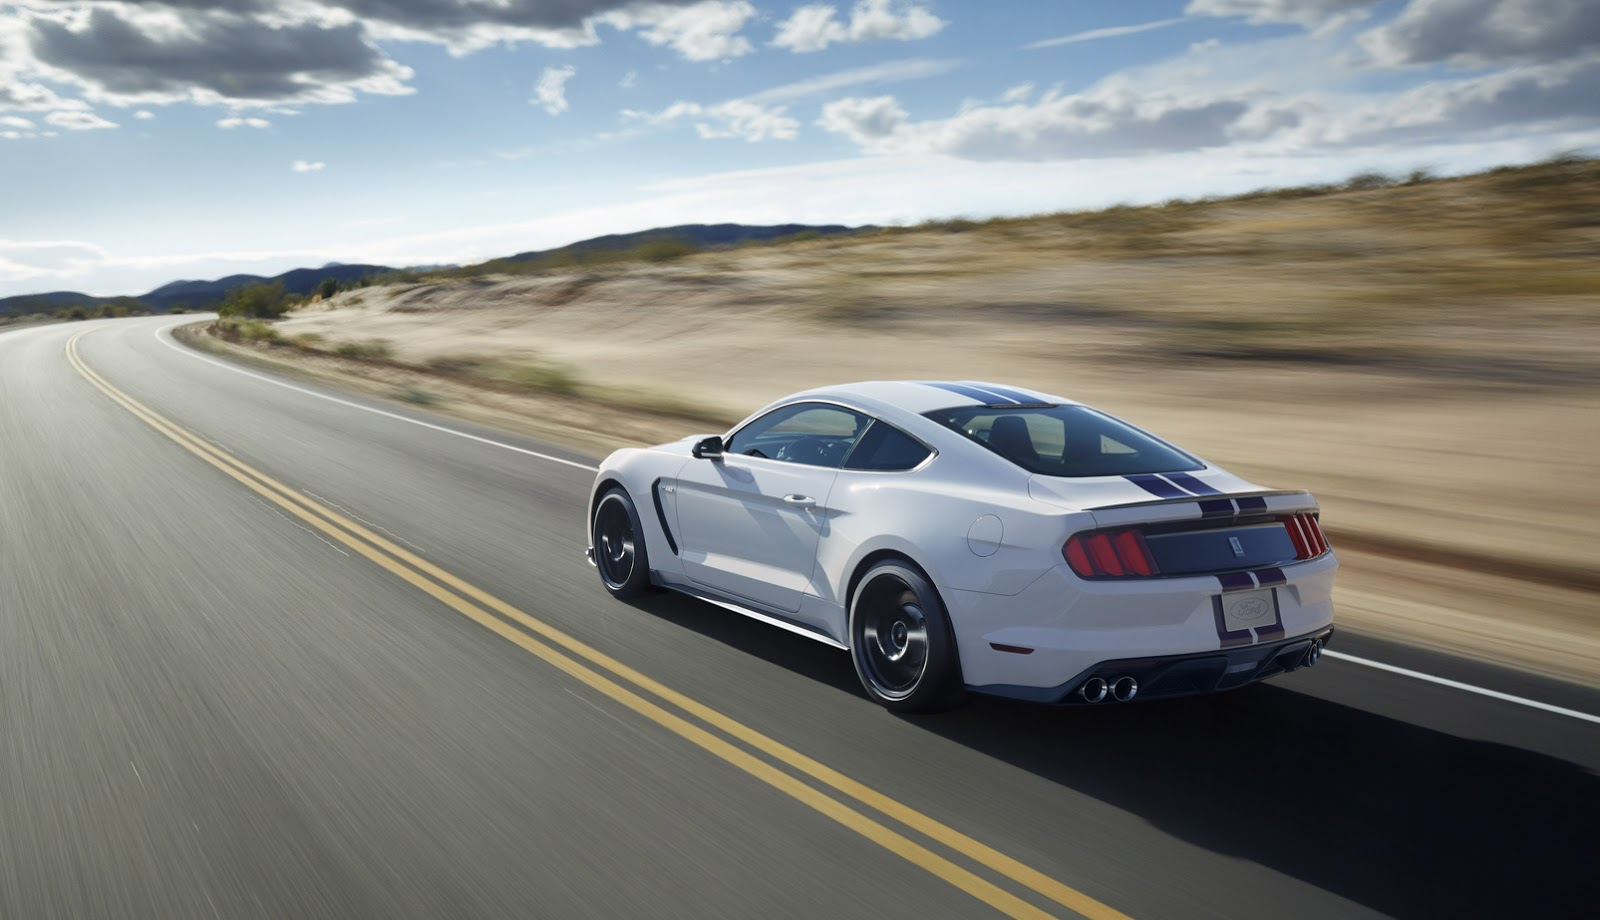 New-Ford-Mustang-Shelby-GT350-45.jpg